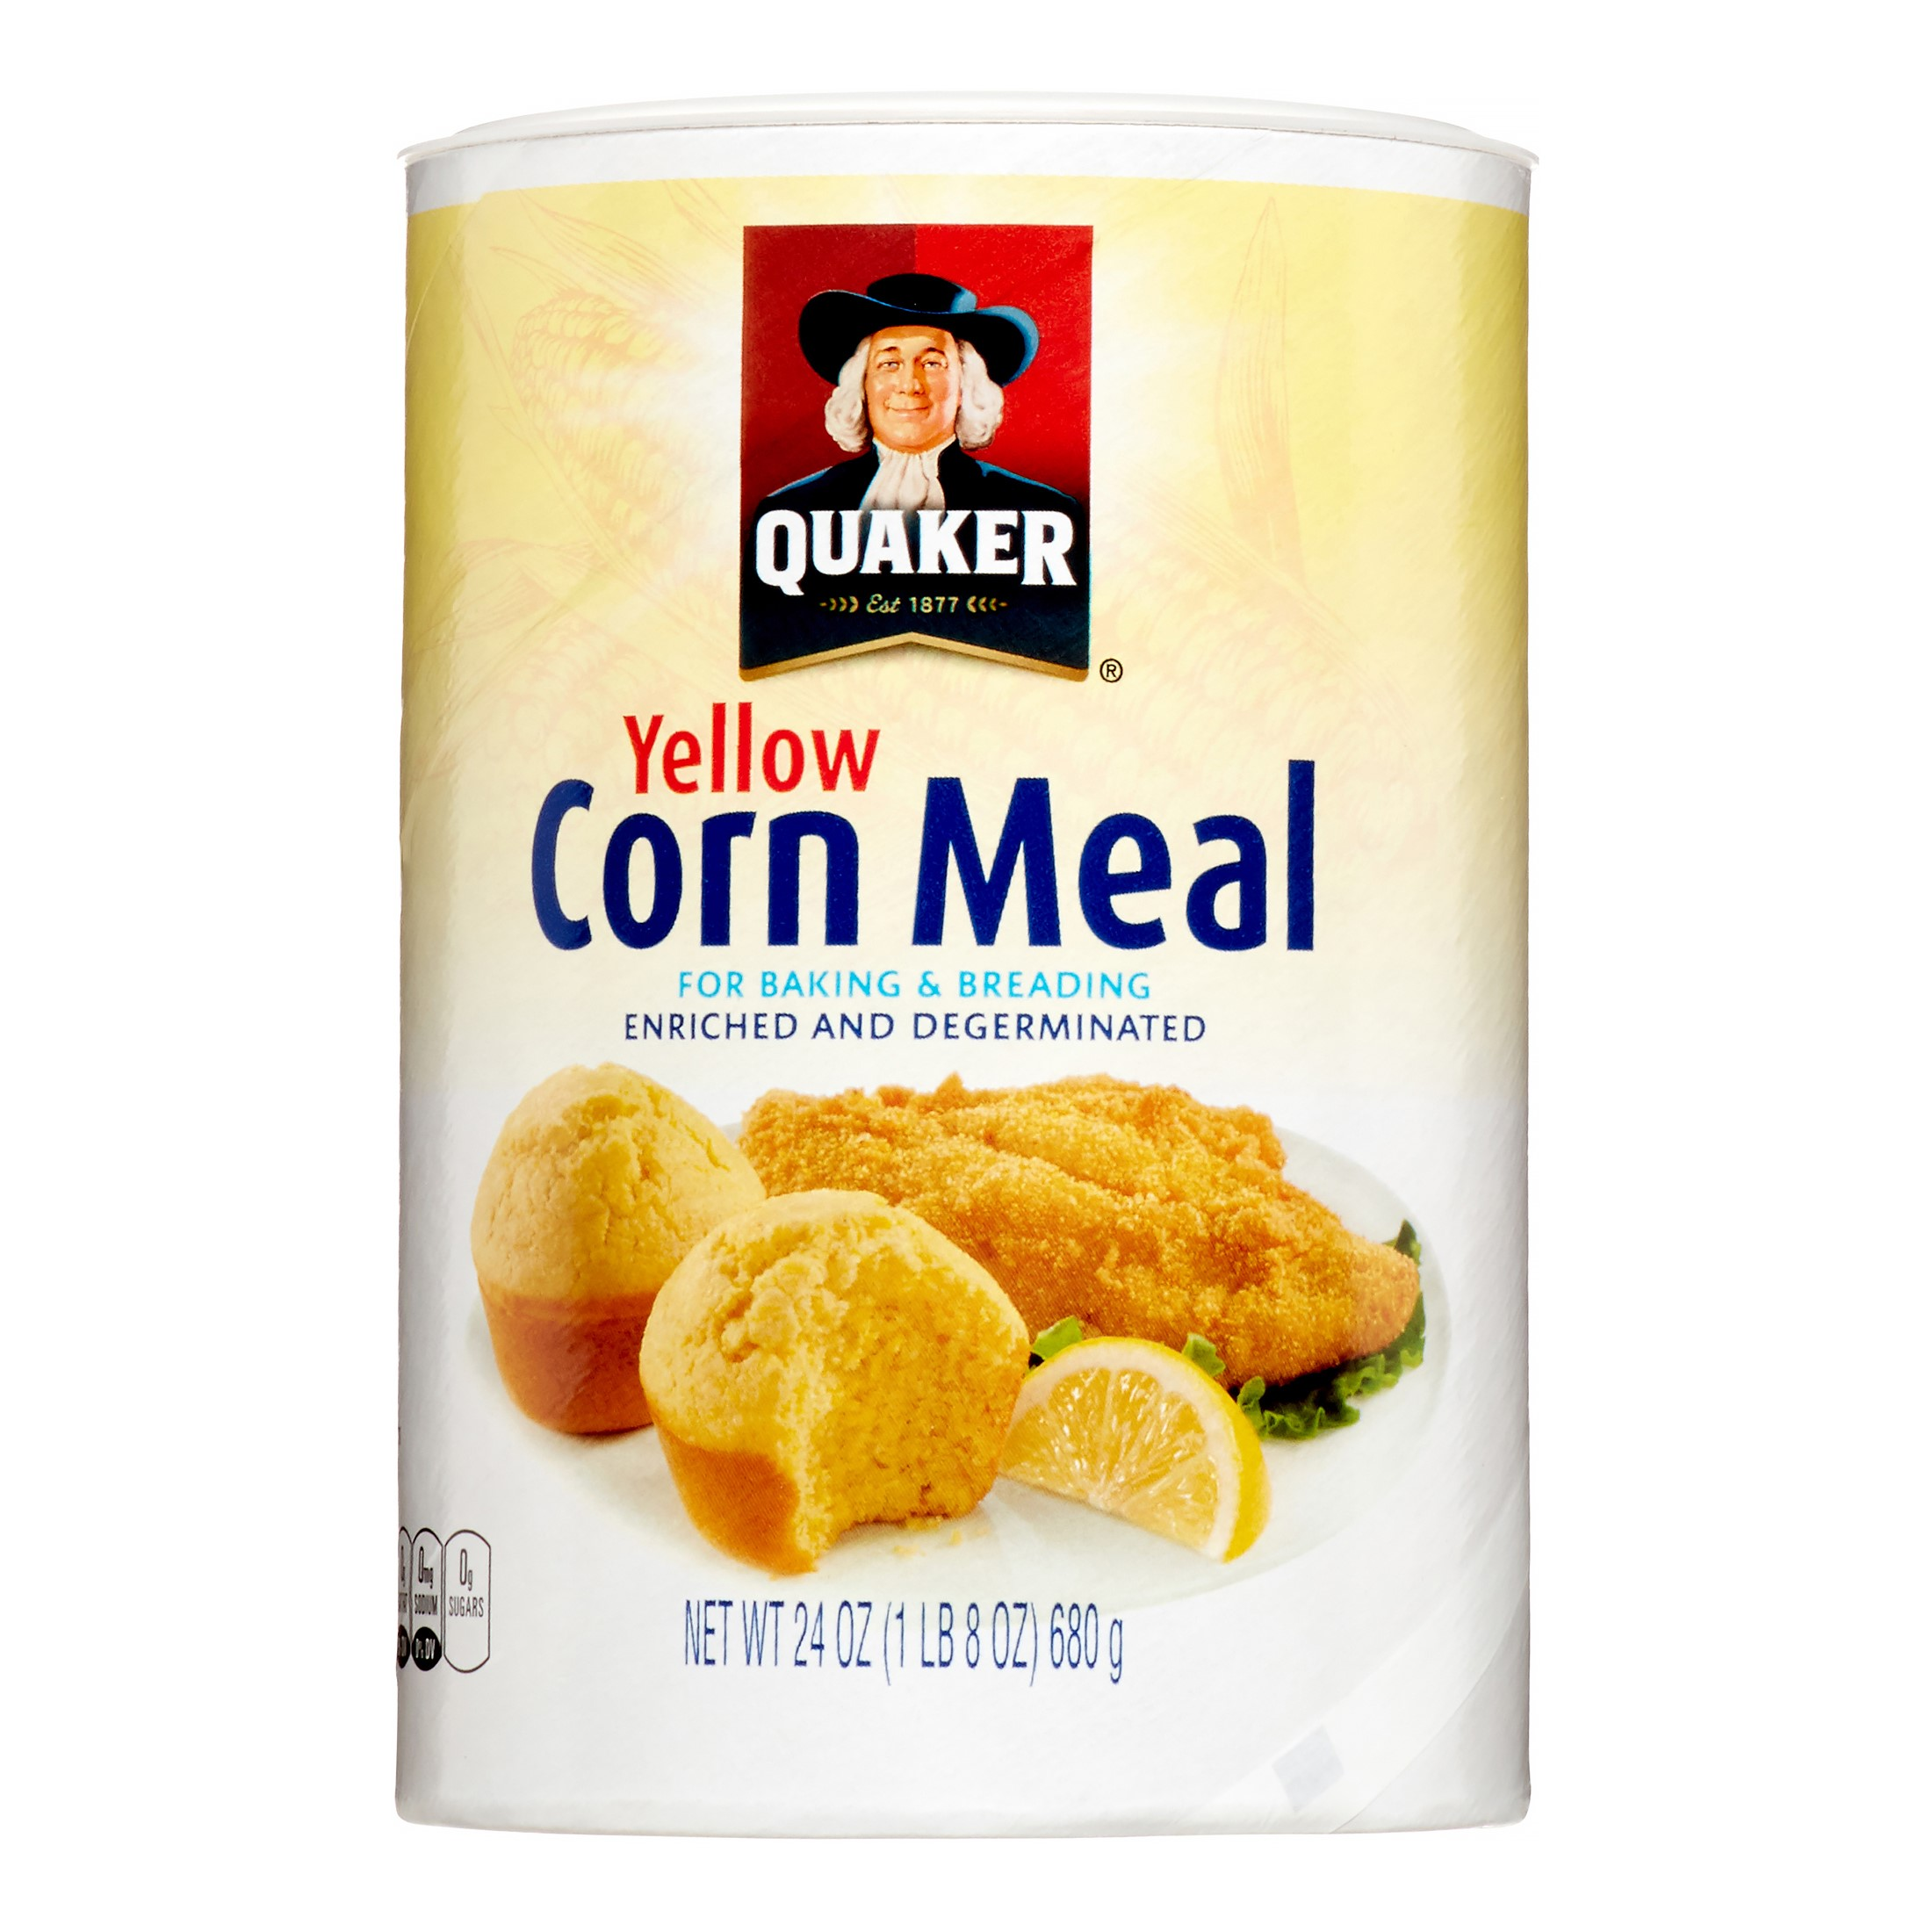 Quaker® Yellow Enriched and Degerminated Corn Meal, 24 oz. Canister